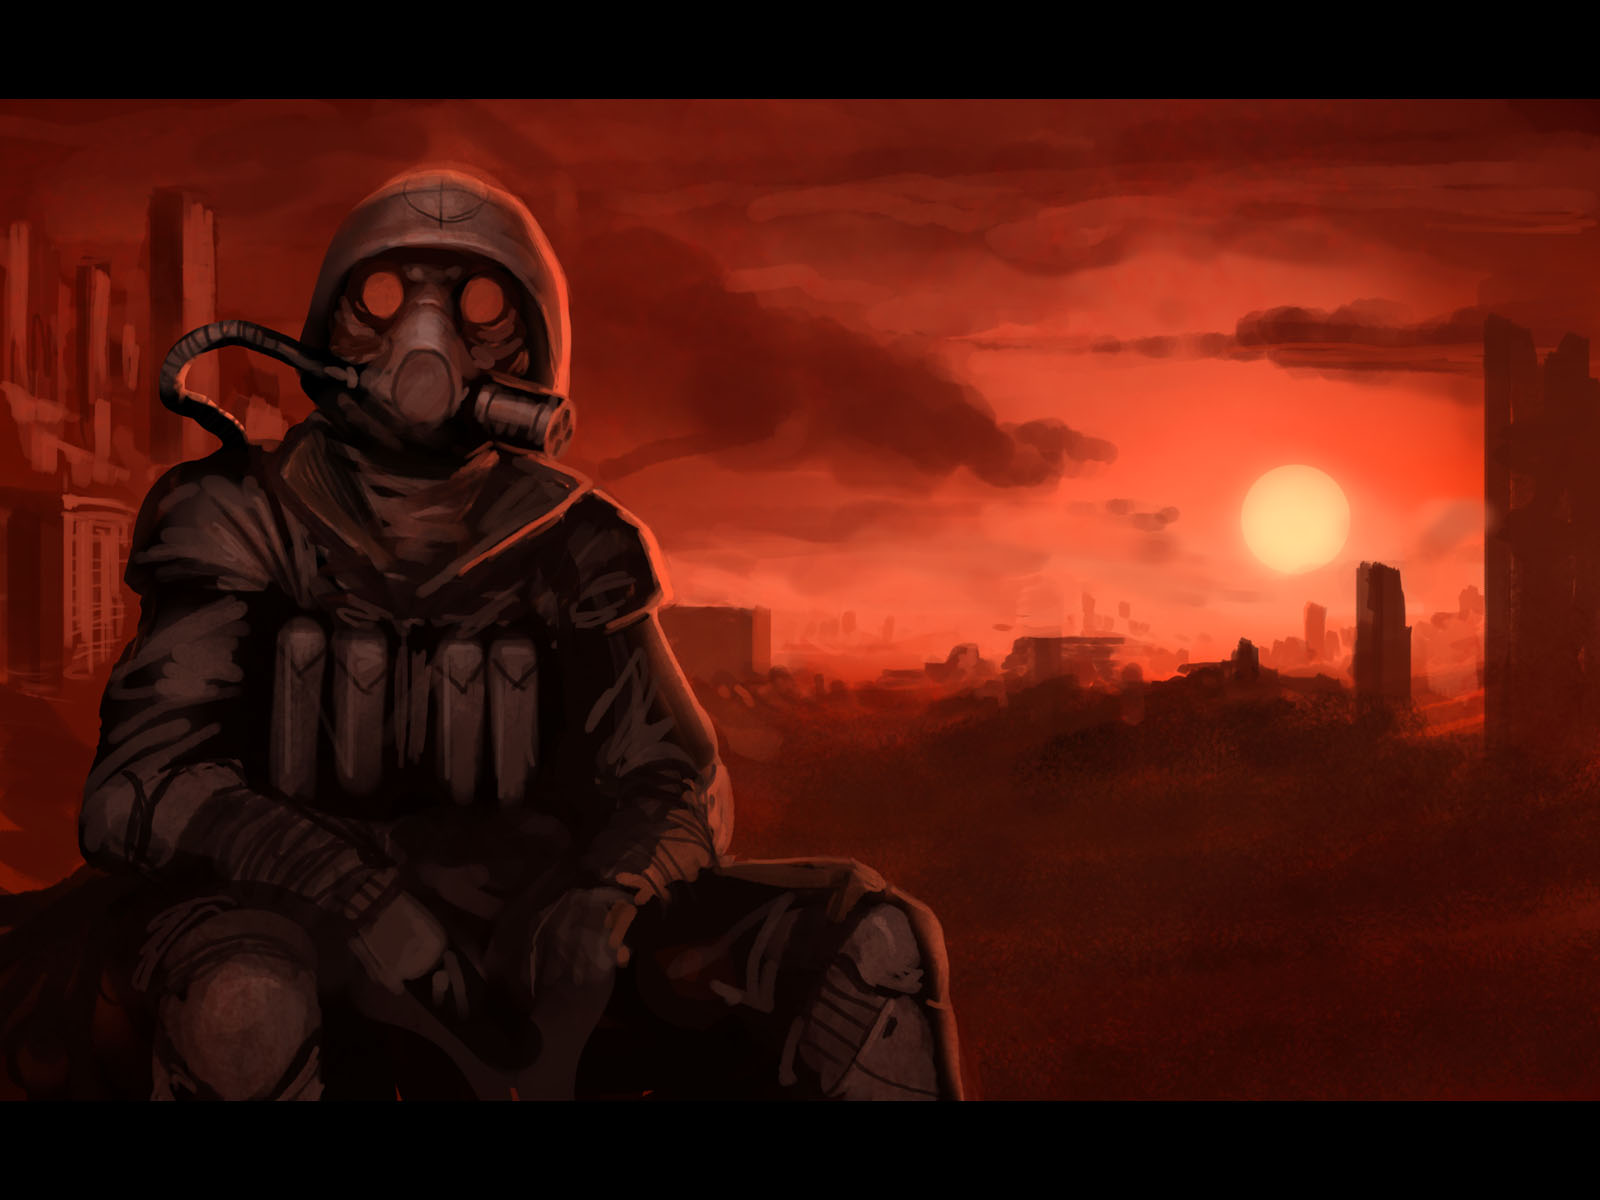 Sci Fi Fuel : Gas mask wallpaper and background image id